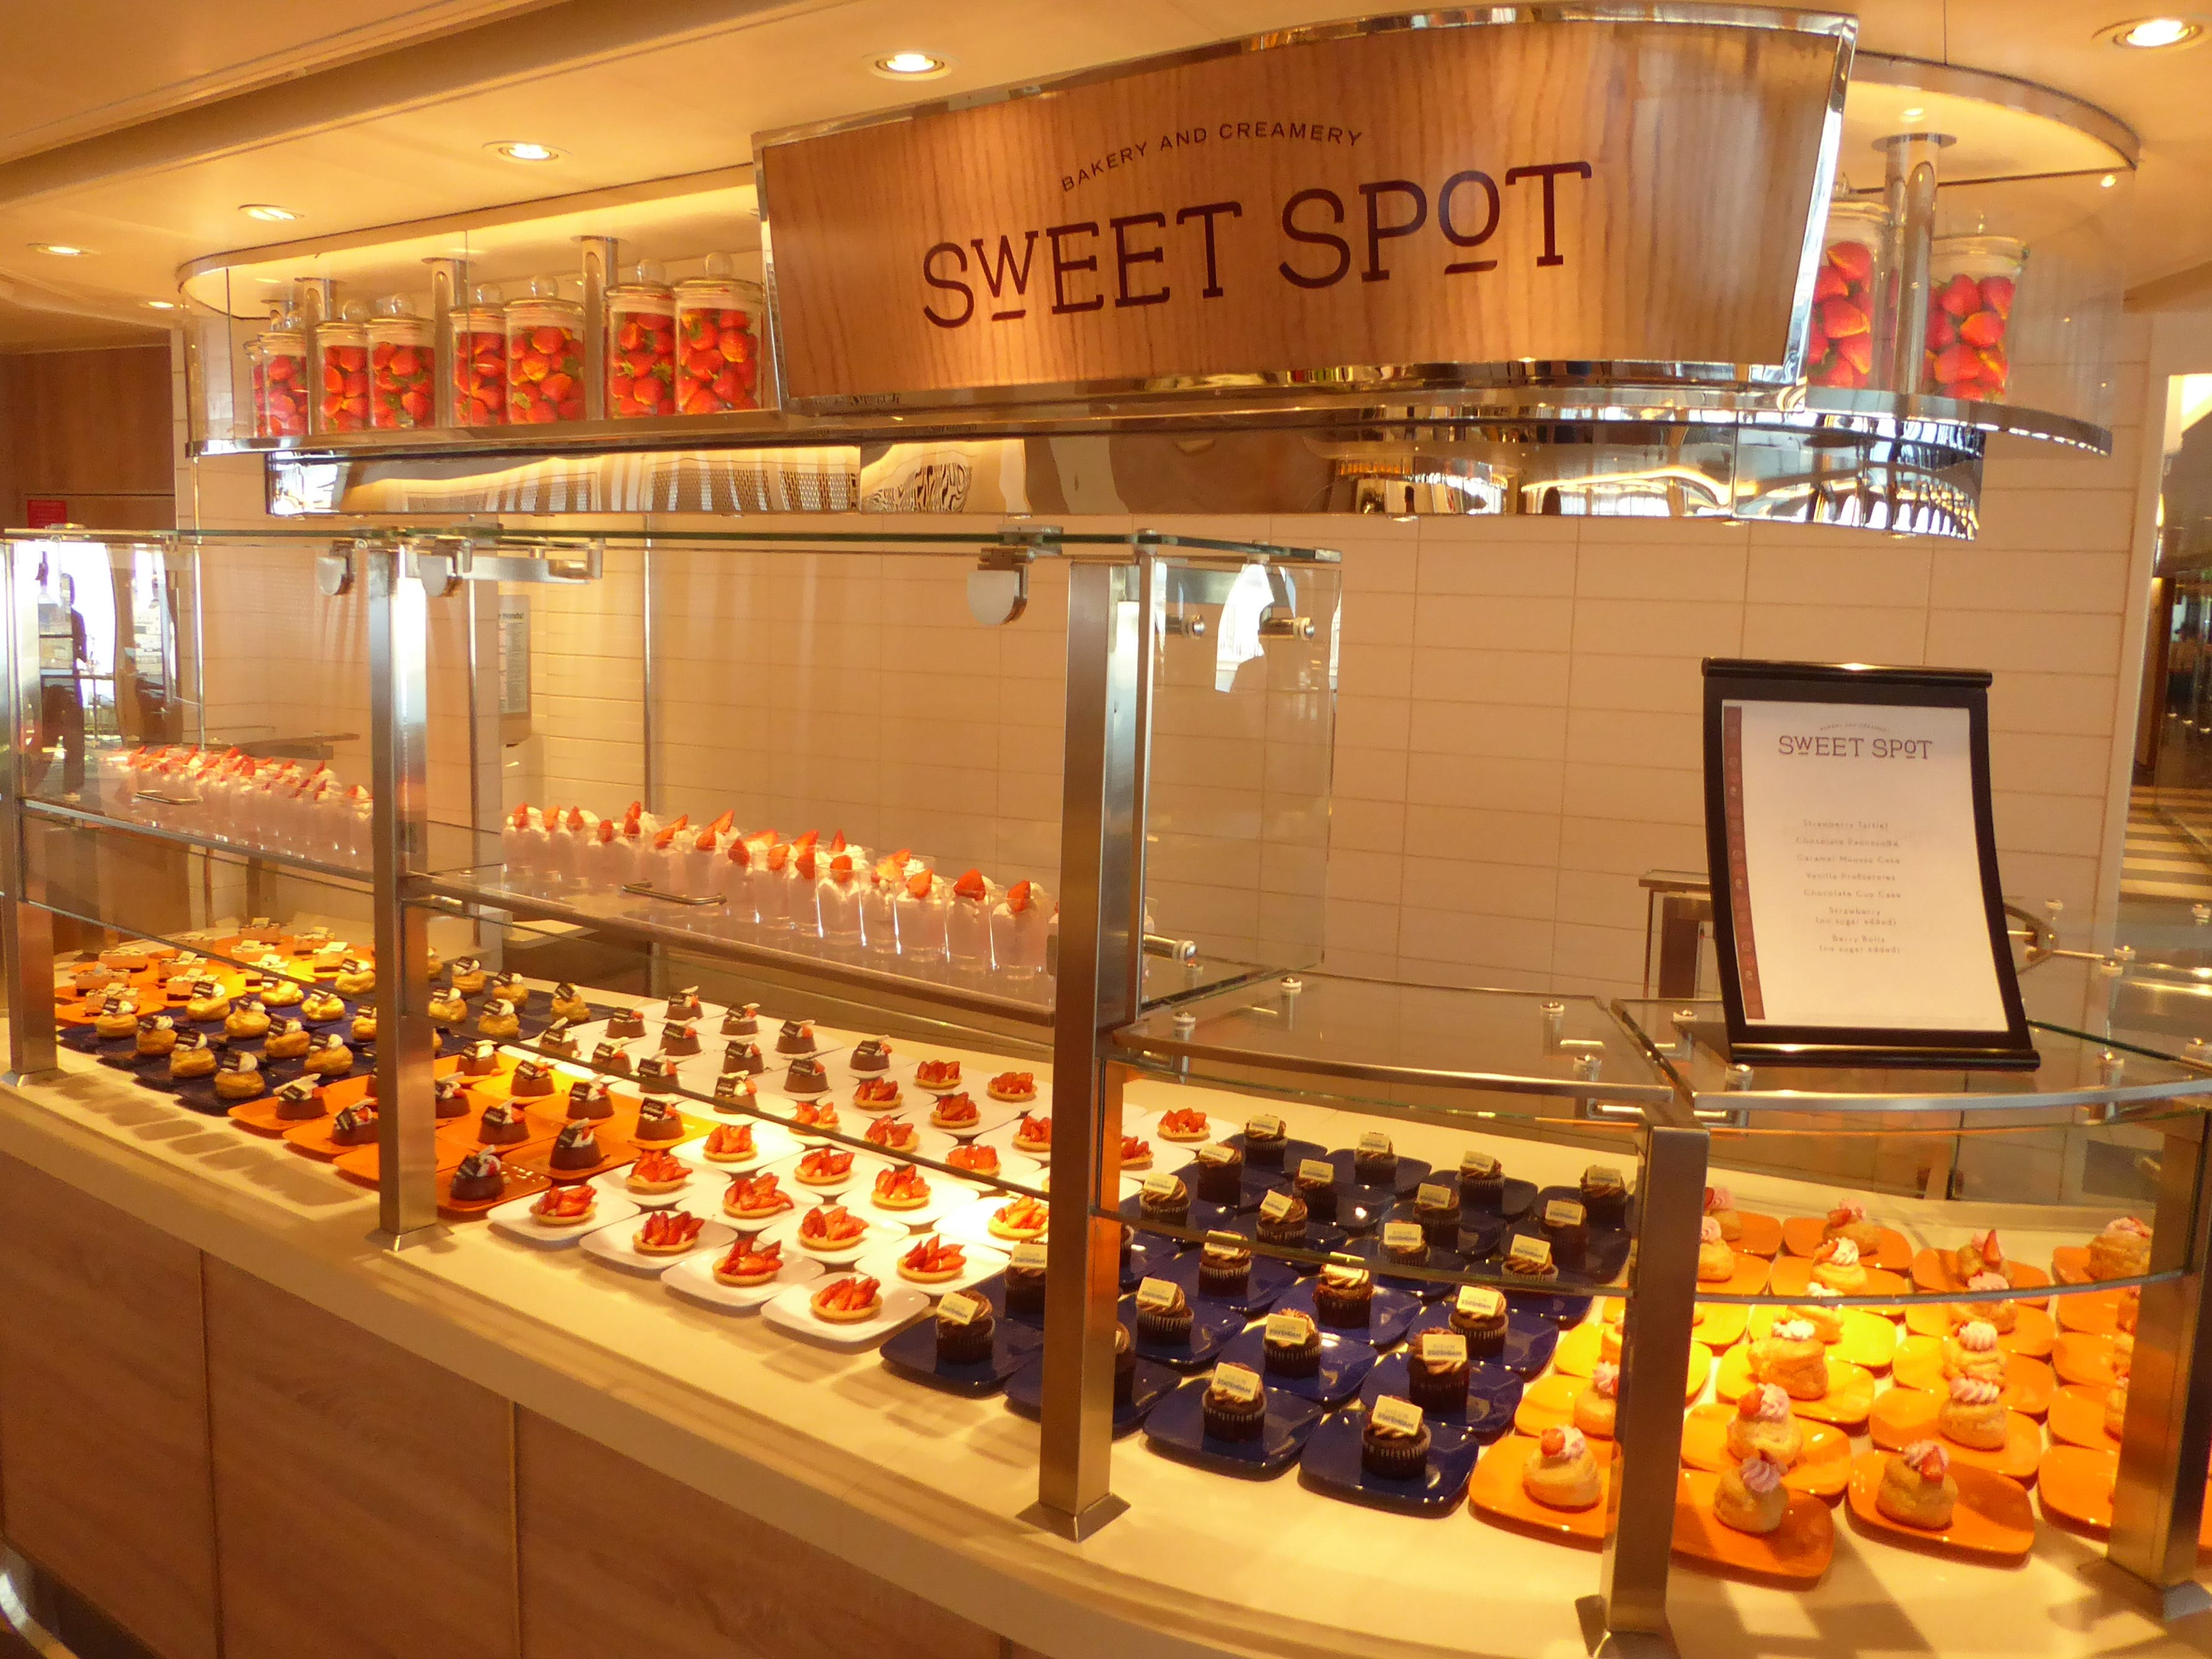 The Sweet Spot is the dessert corner of the Lido Market, offering baked treats including cupcakes, pies and tarts.